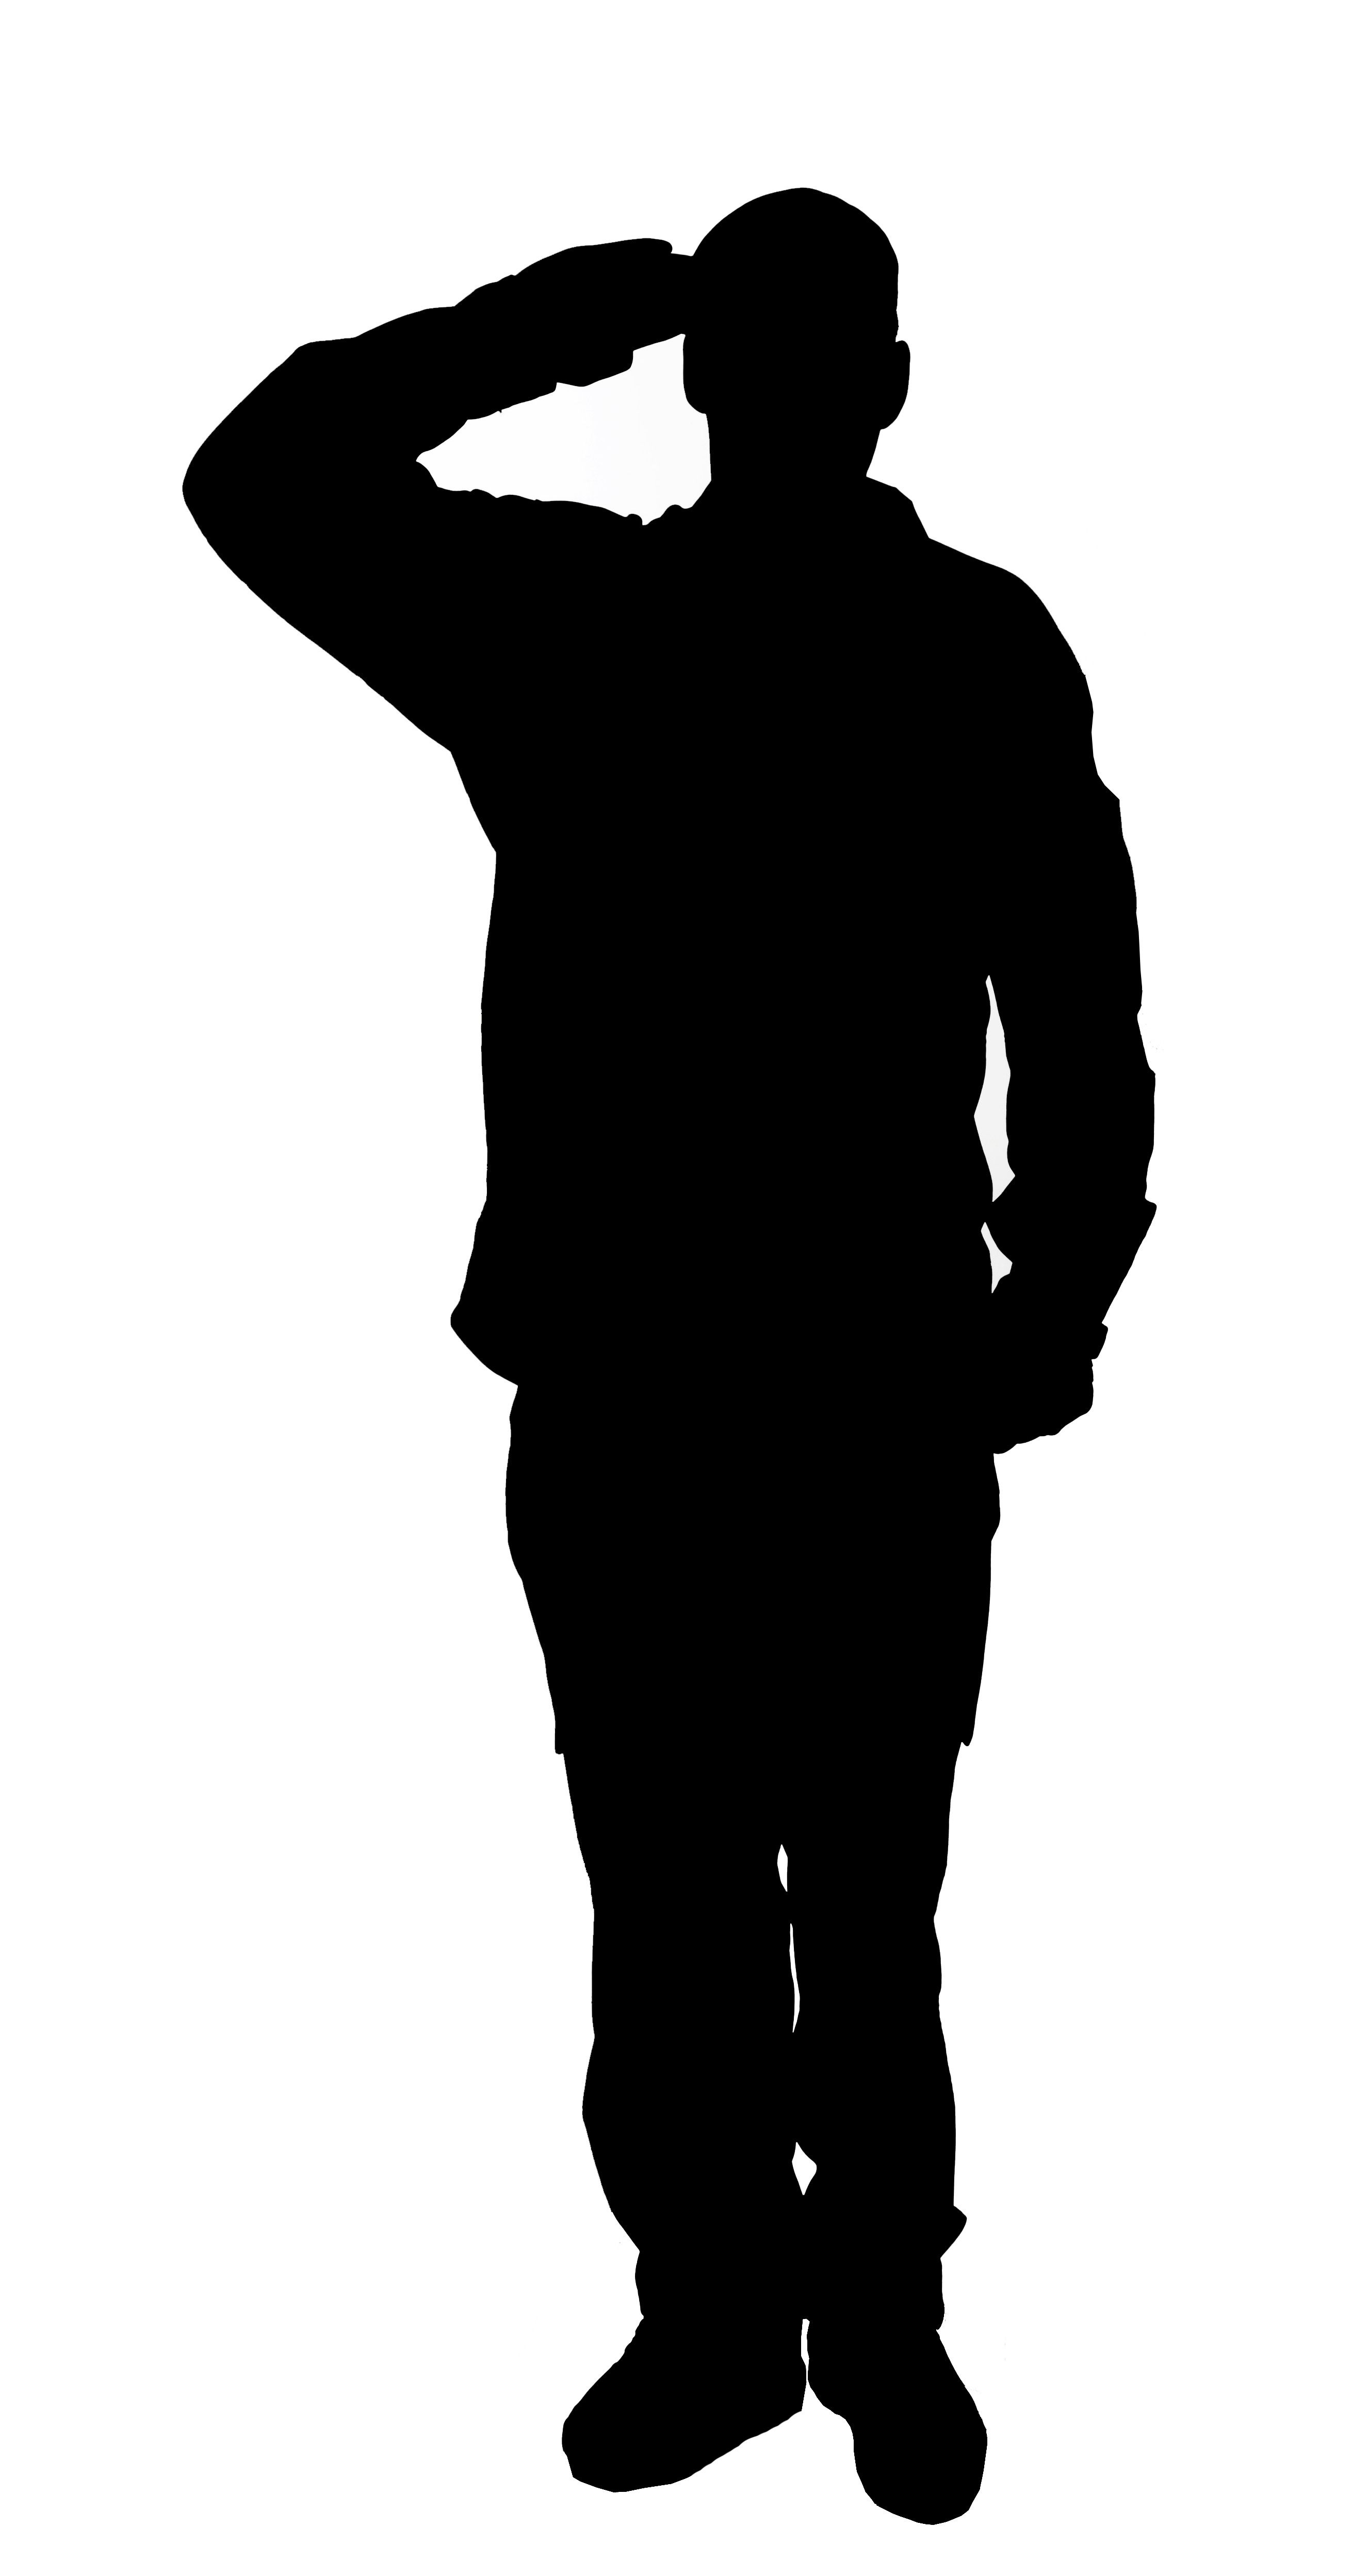 2652x4992 Soldier Silhouette Draw On Wall Paint In Black Paint